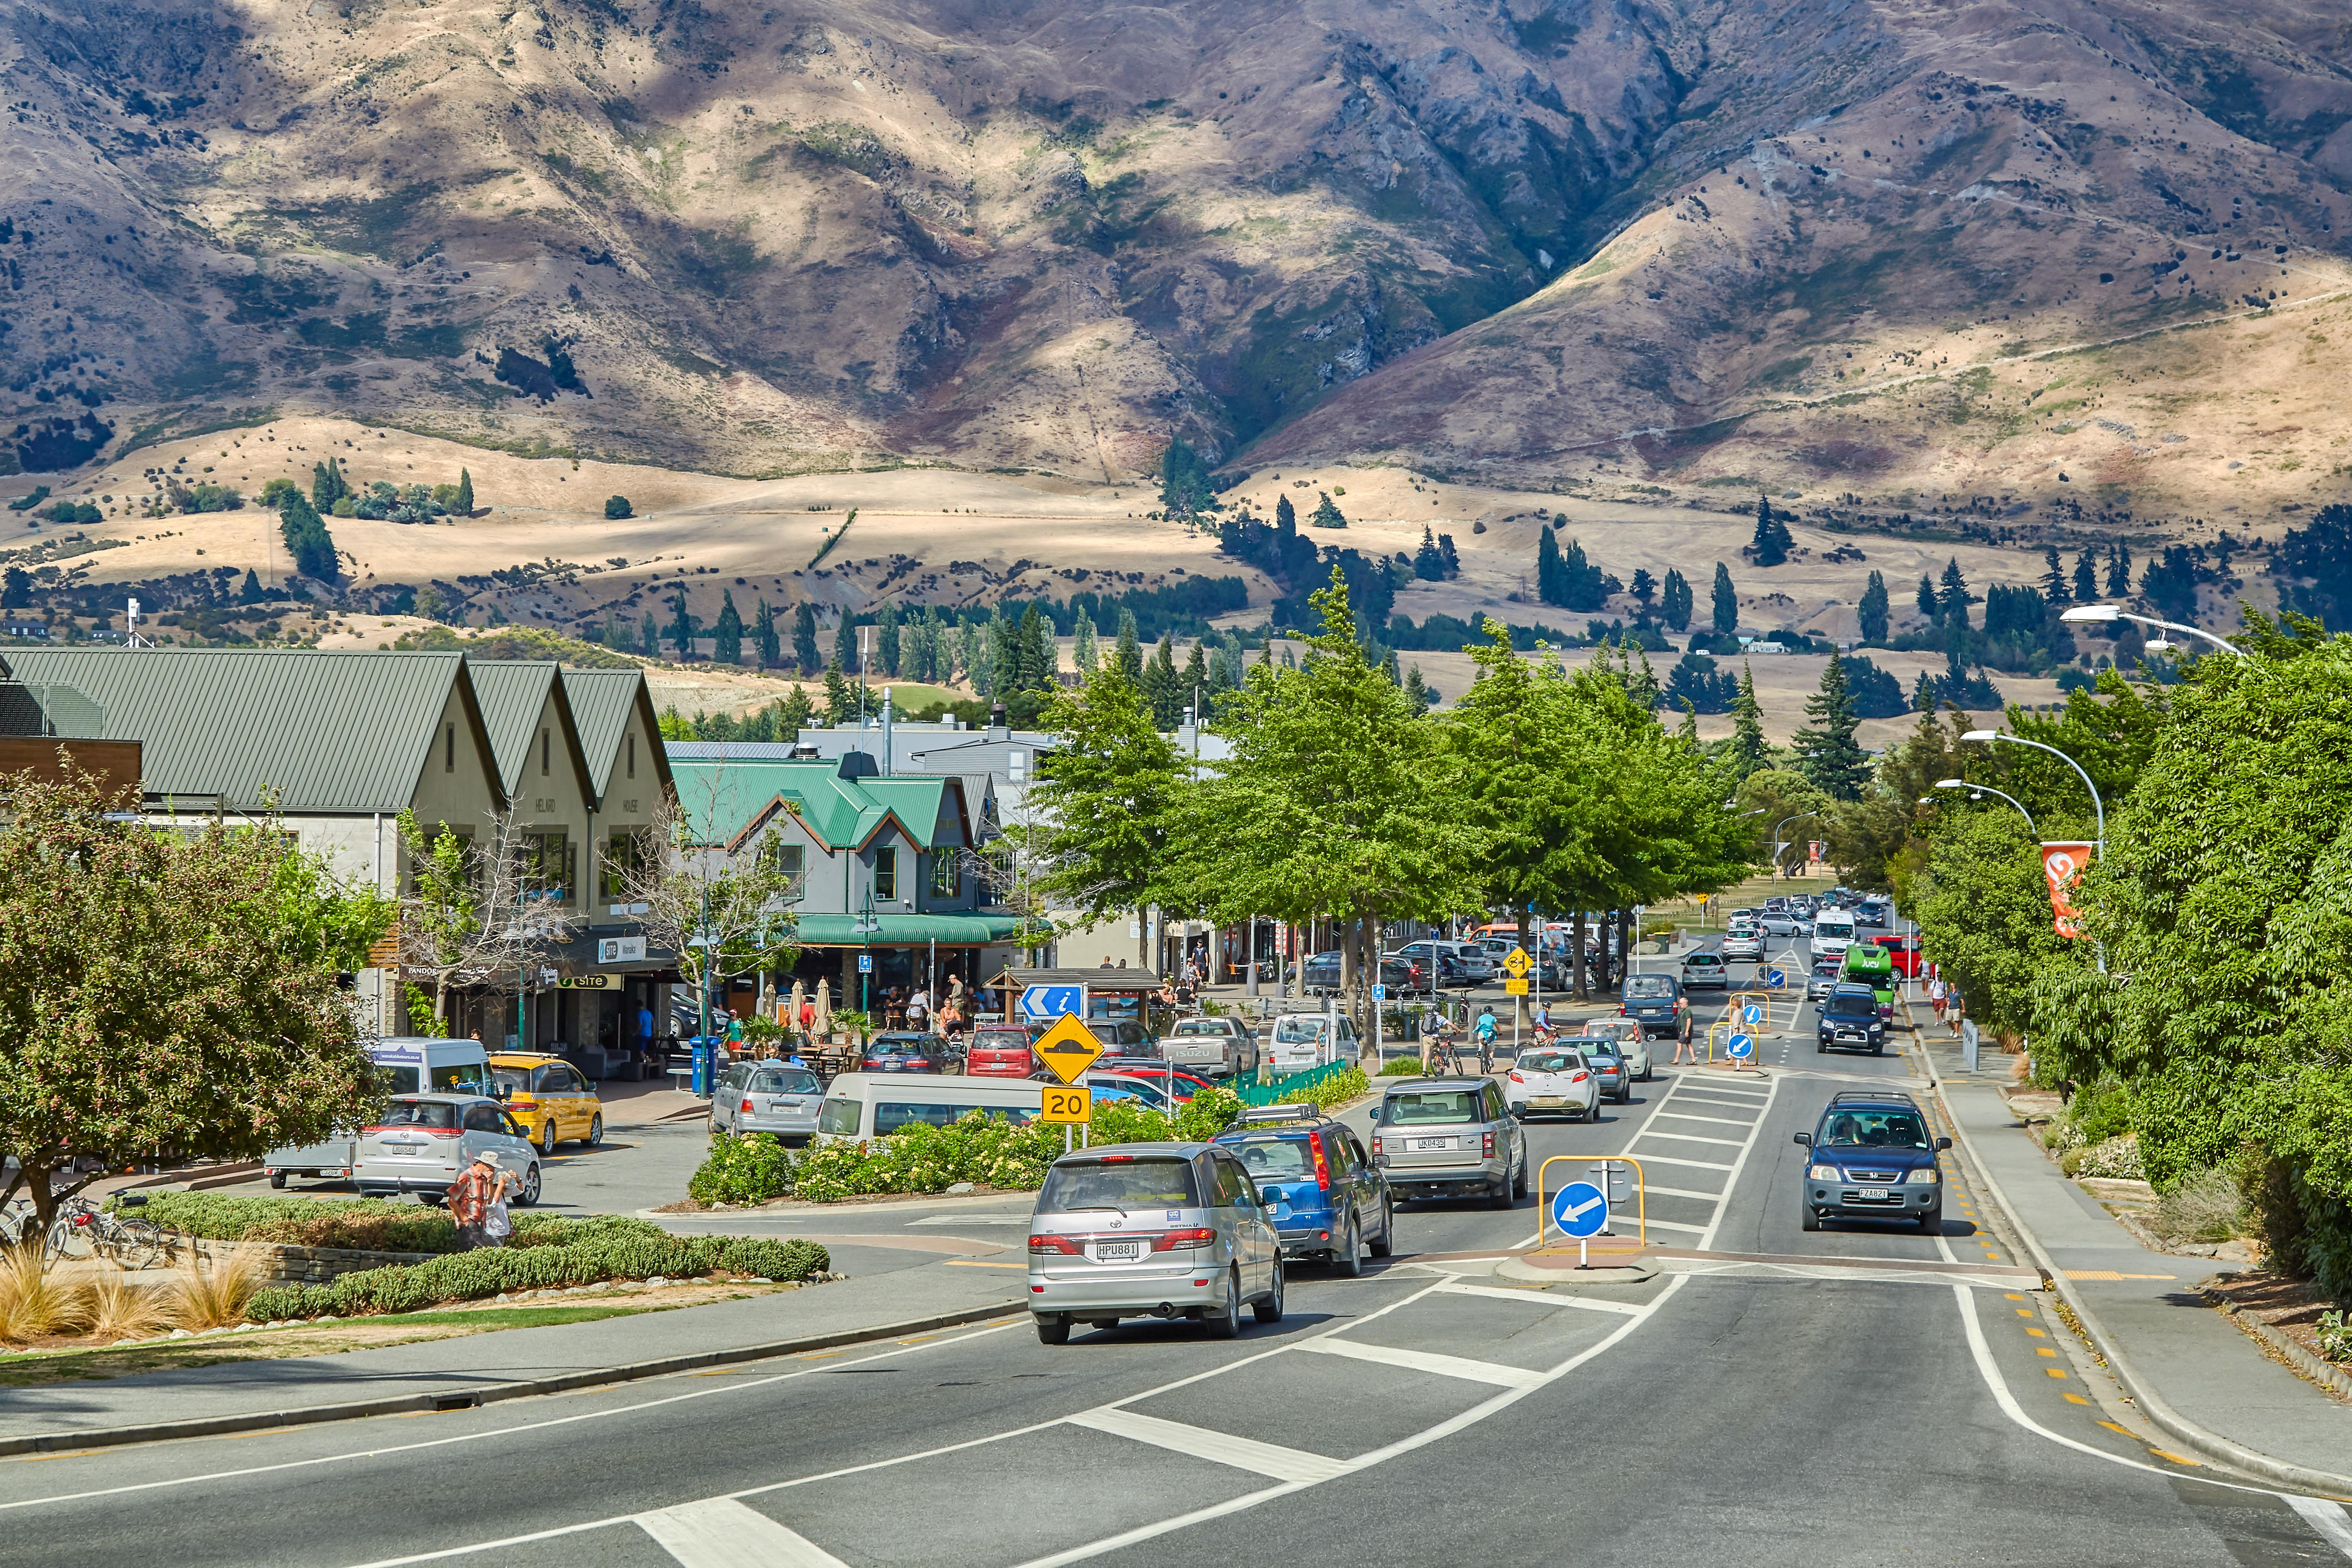 Looking down the main street of the town of Wanaka, Otago, New Zealand